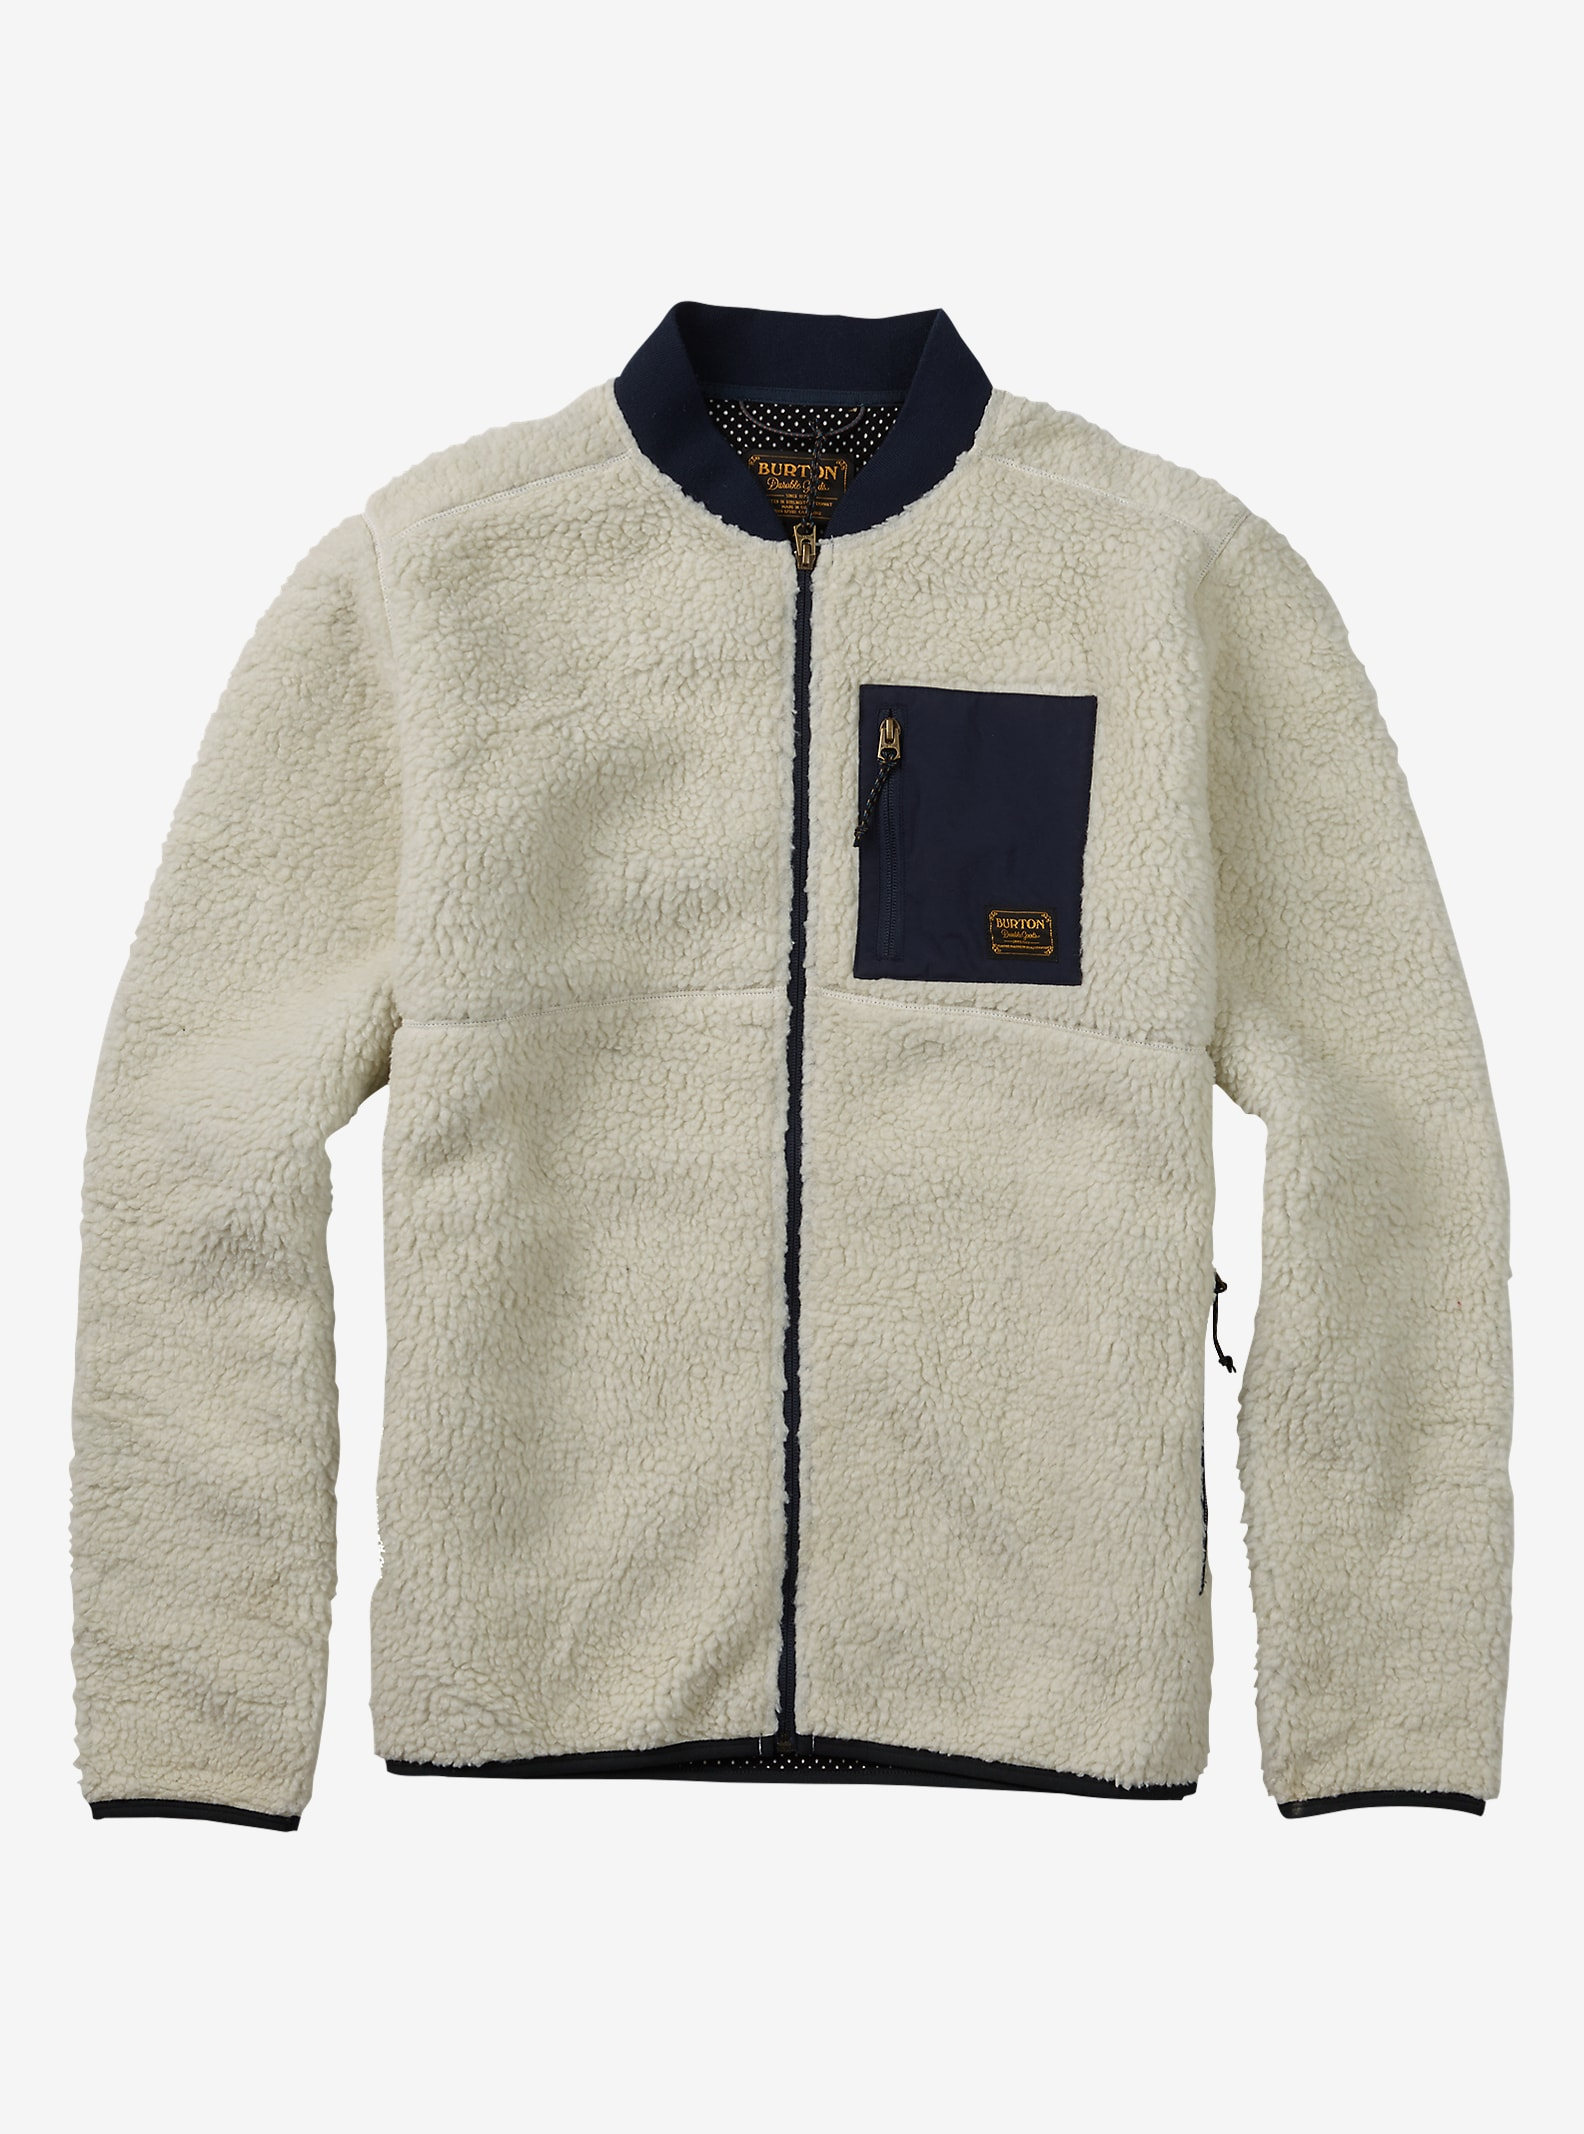 Burton Grove Full-Zip Fleece shown in Canvas